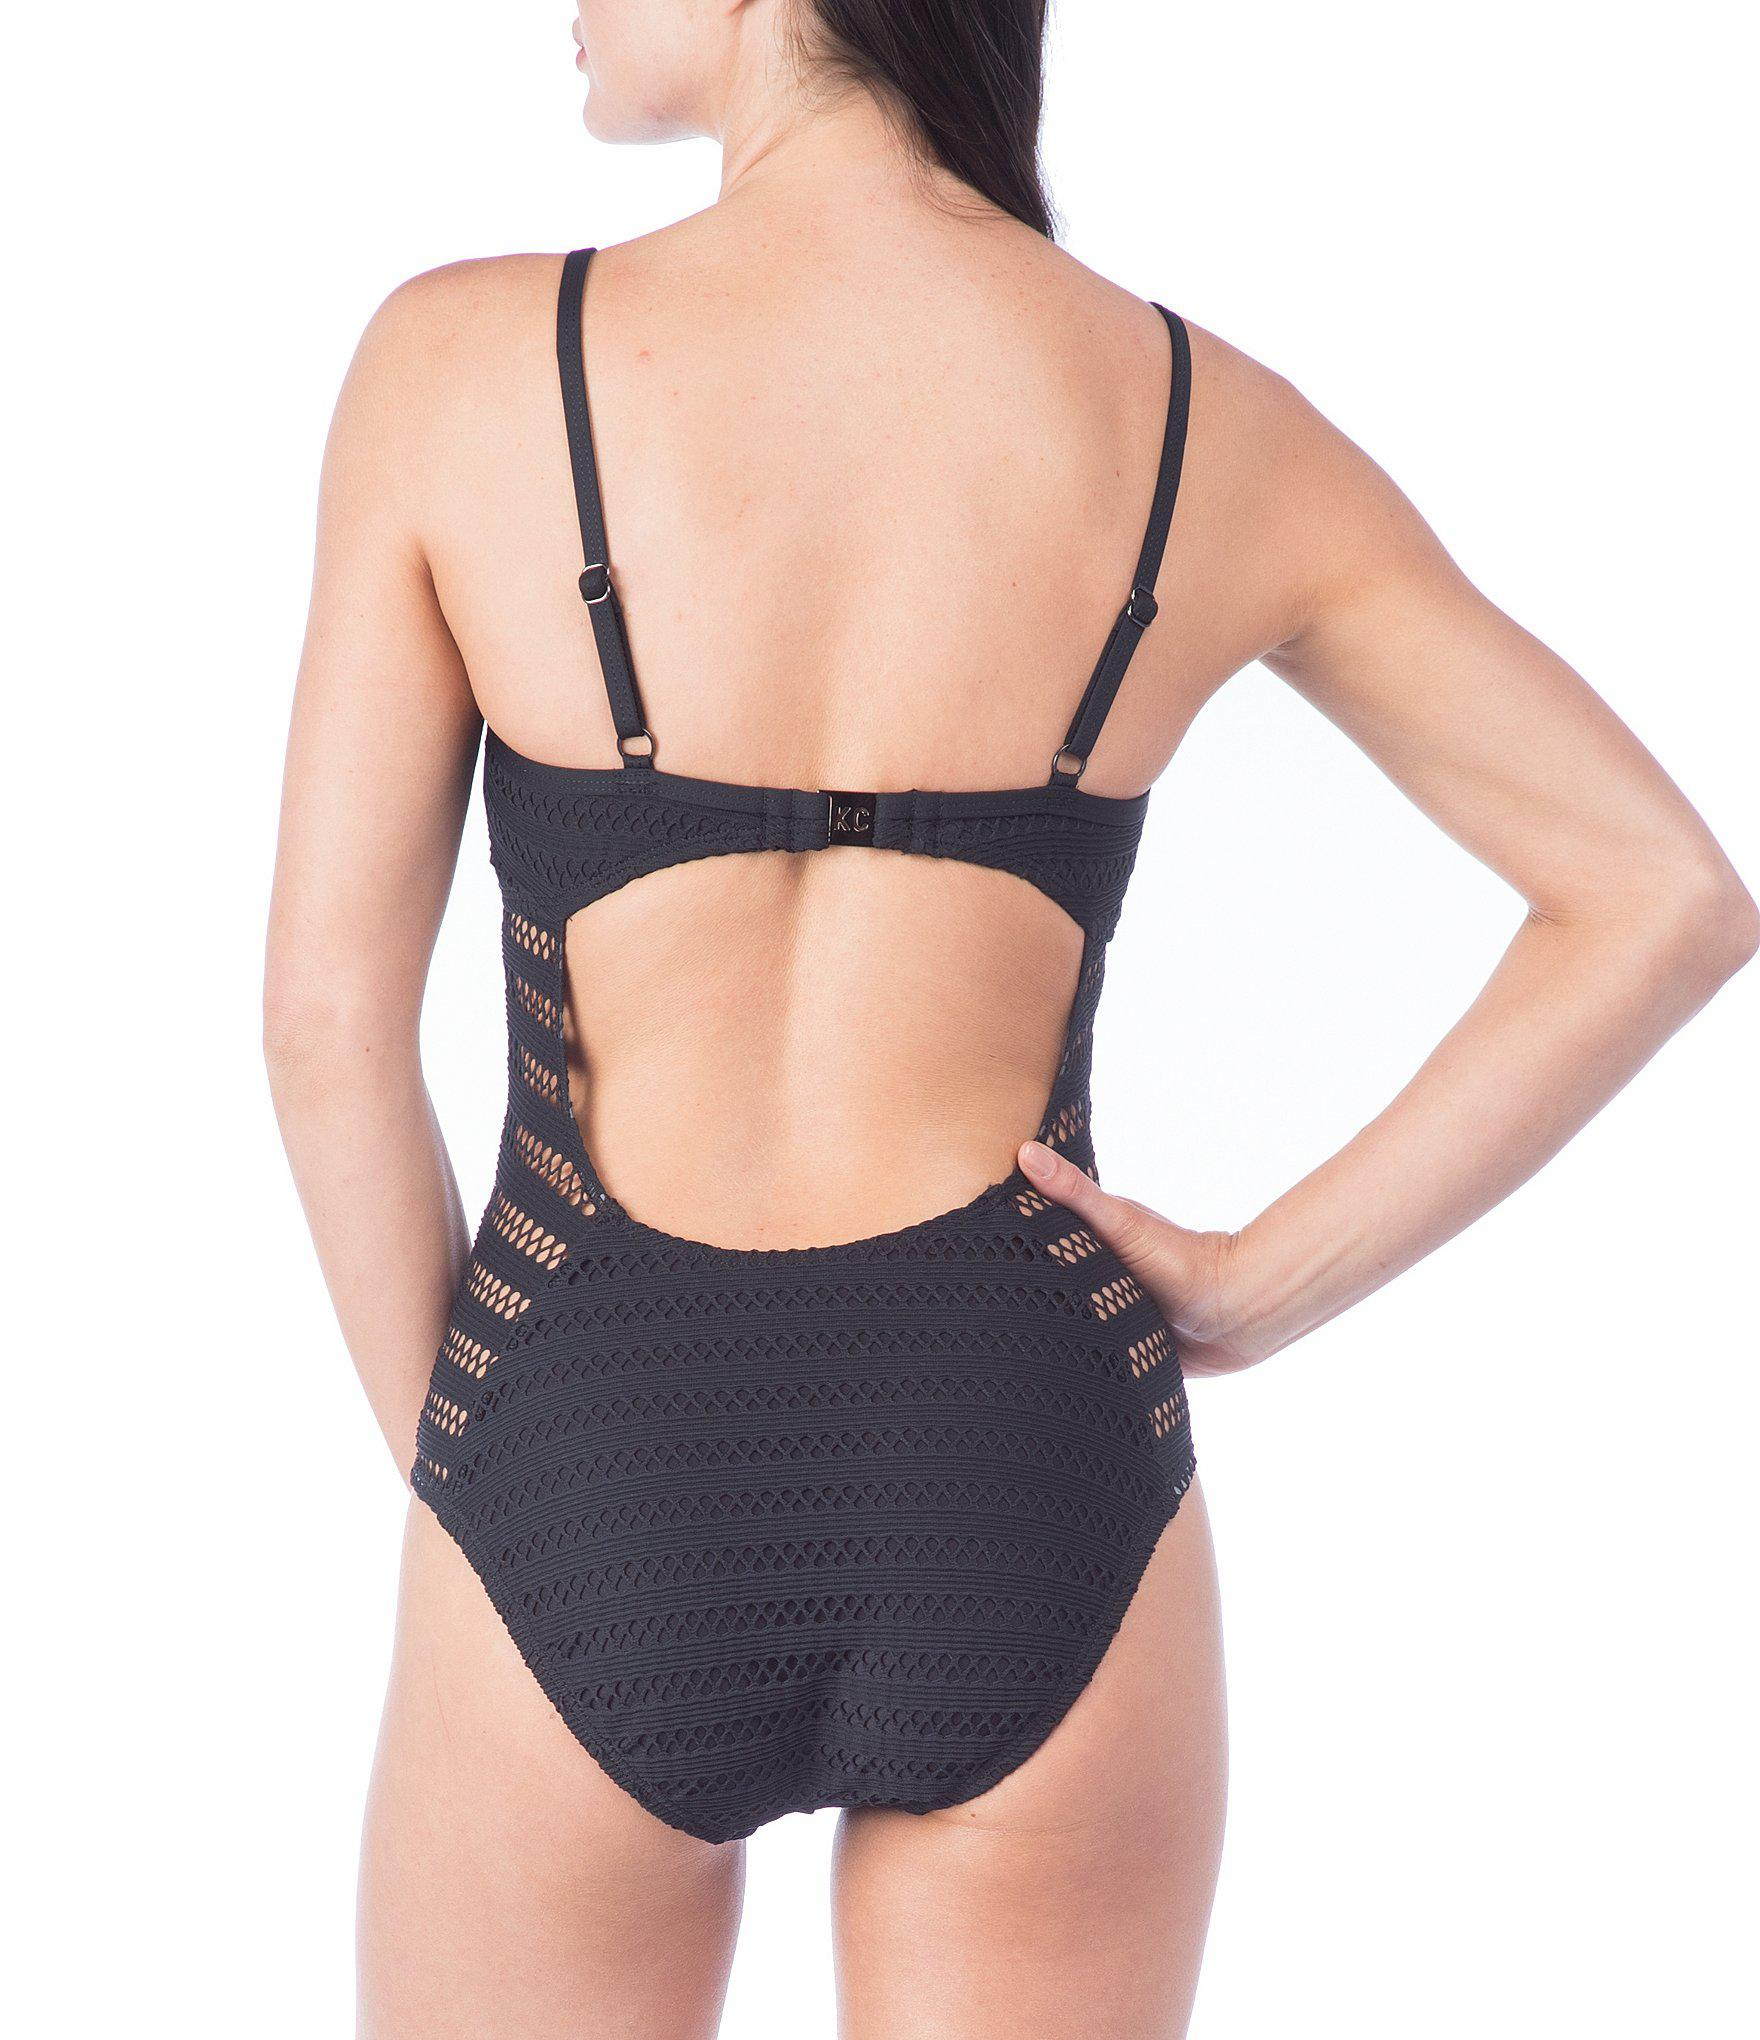 686fad5083 Kenneth Cole Tough Luxe Crochet High Leg V-neck One-piece in Black ...